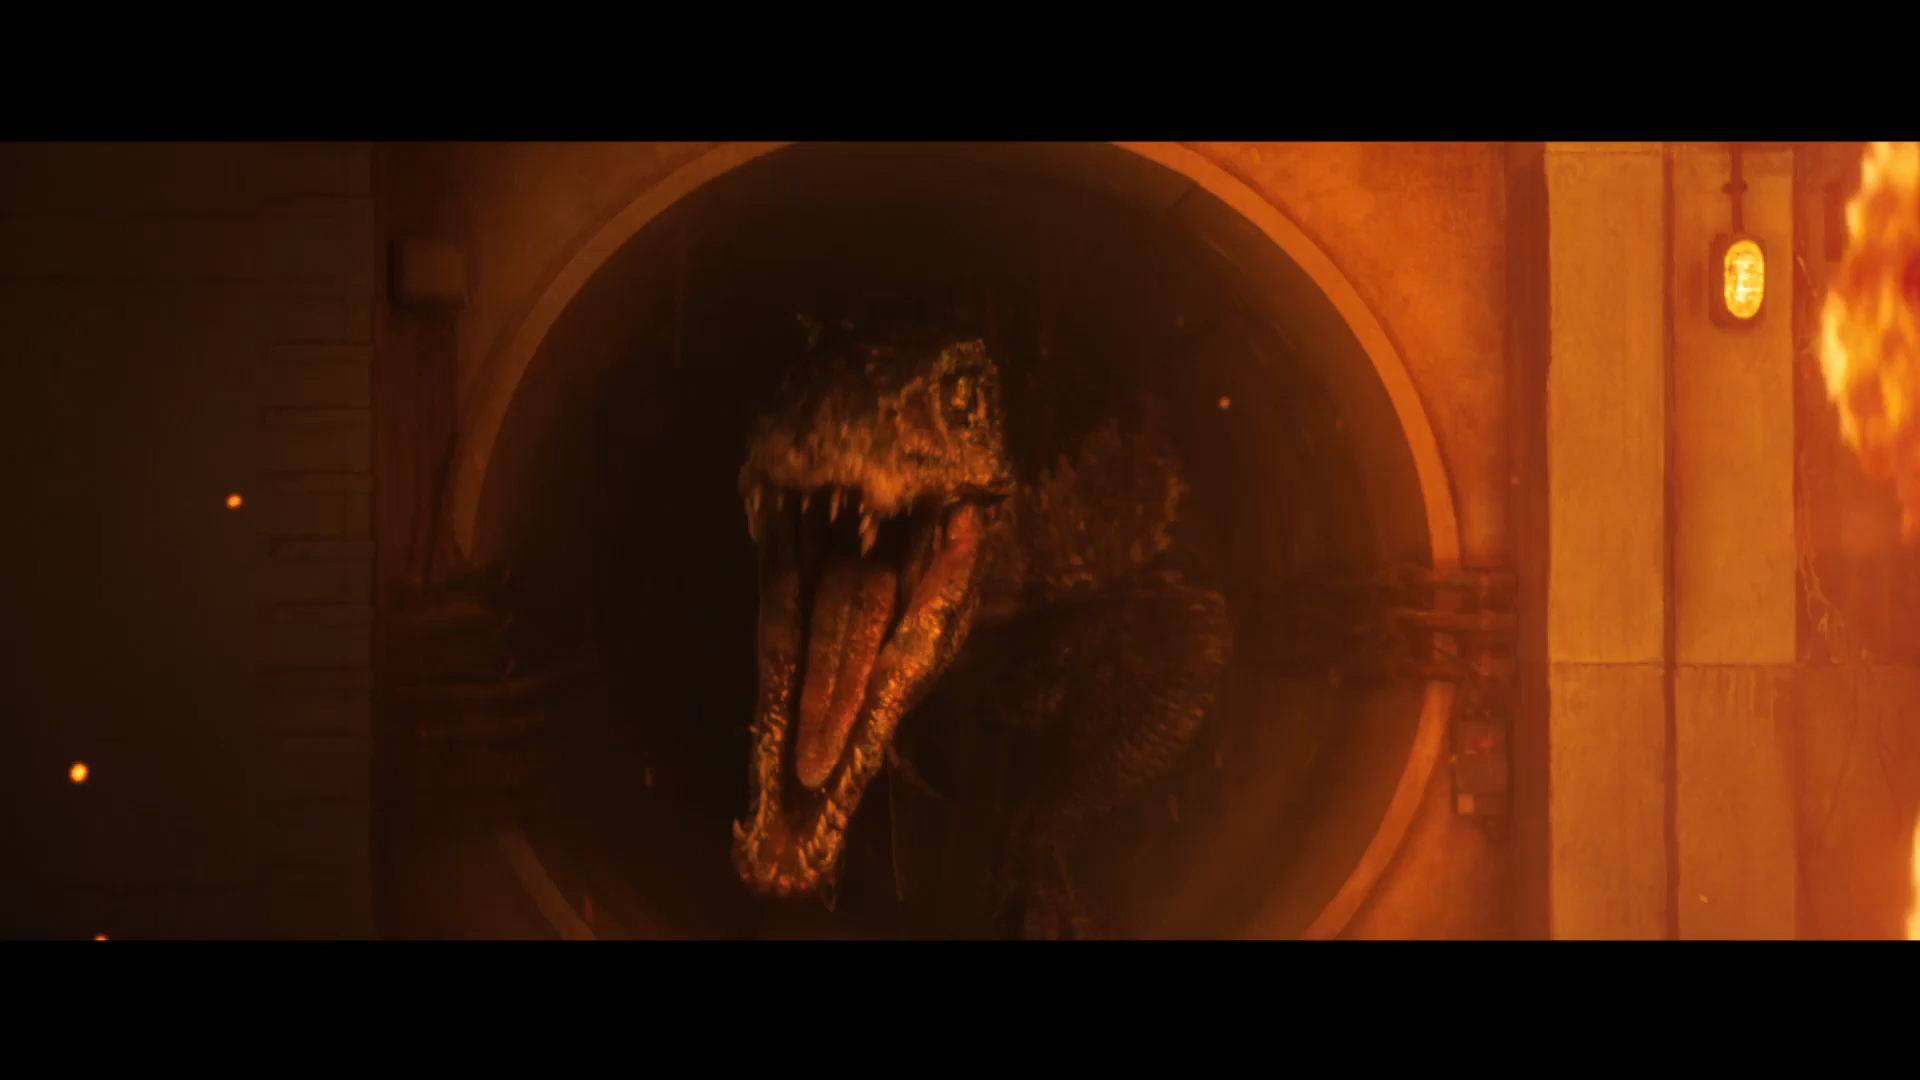 The Jurassic World: Fallen Kingdom